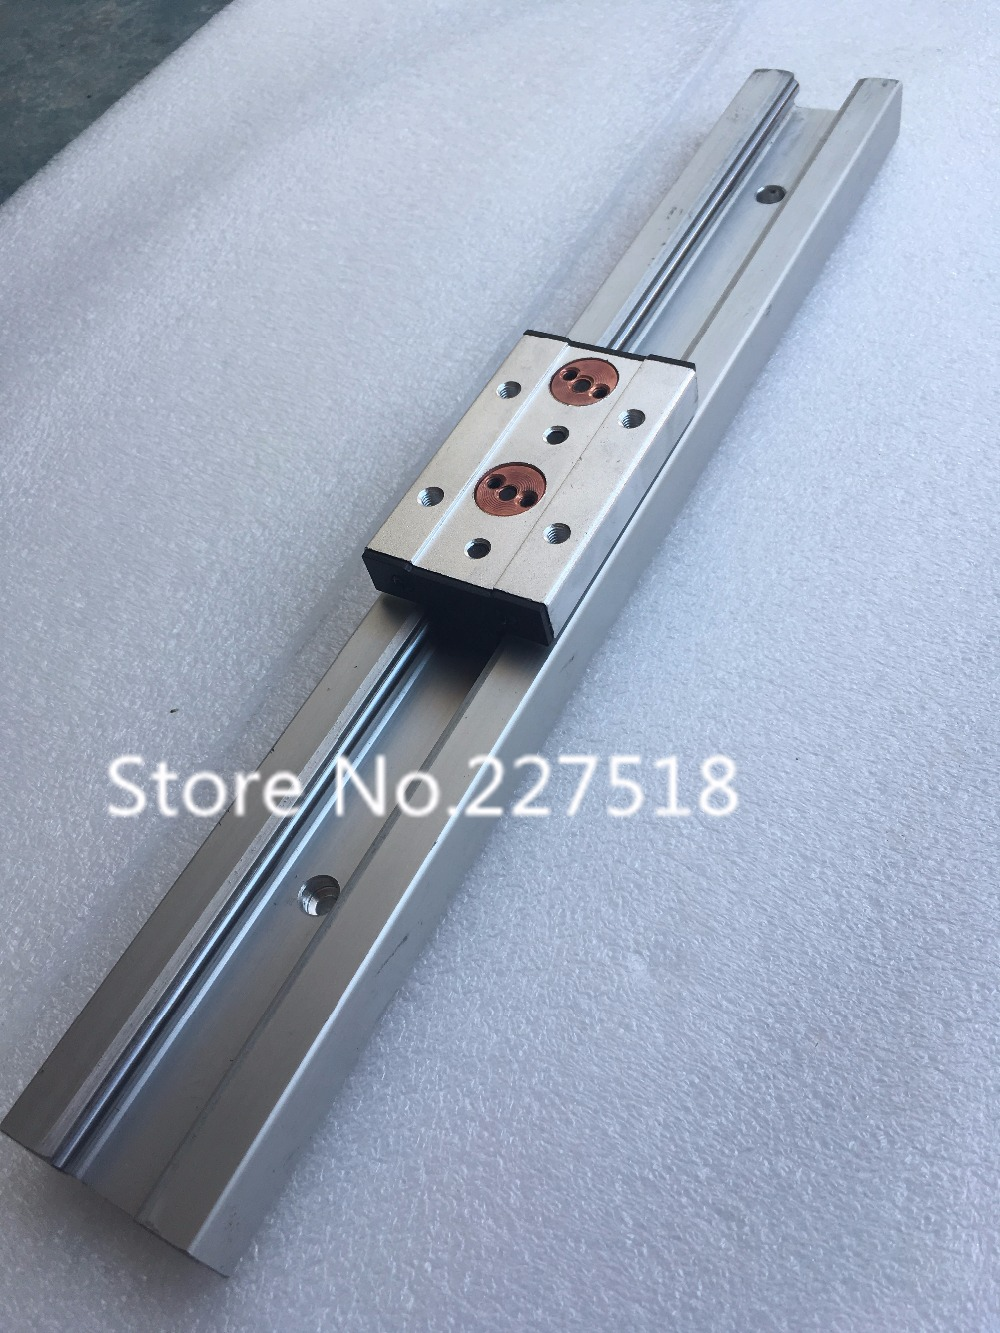 1pcs Double axis roller linear guide SGR15N L500mm +1pcs SGB15UU block multi axis core linear Motion slide rail aluminum guide